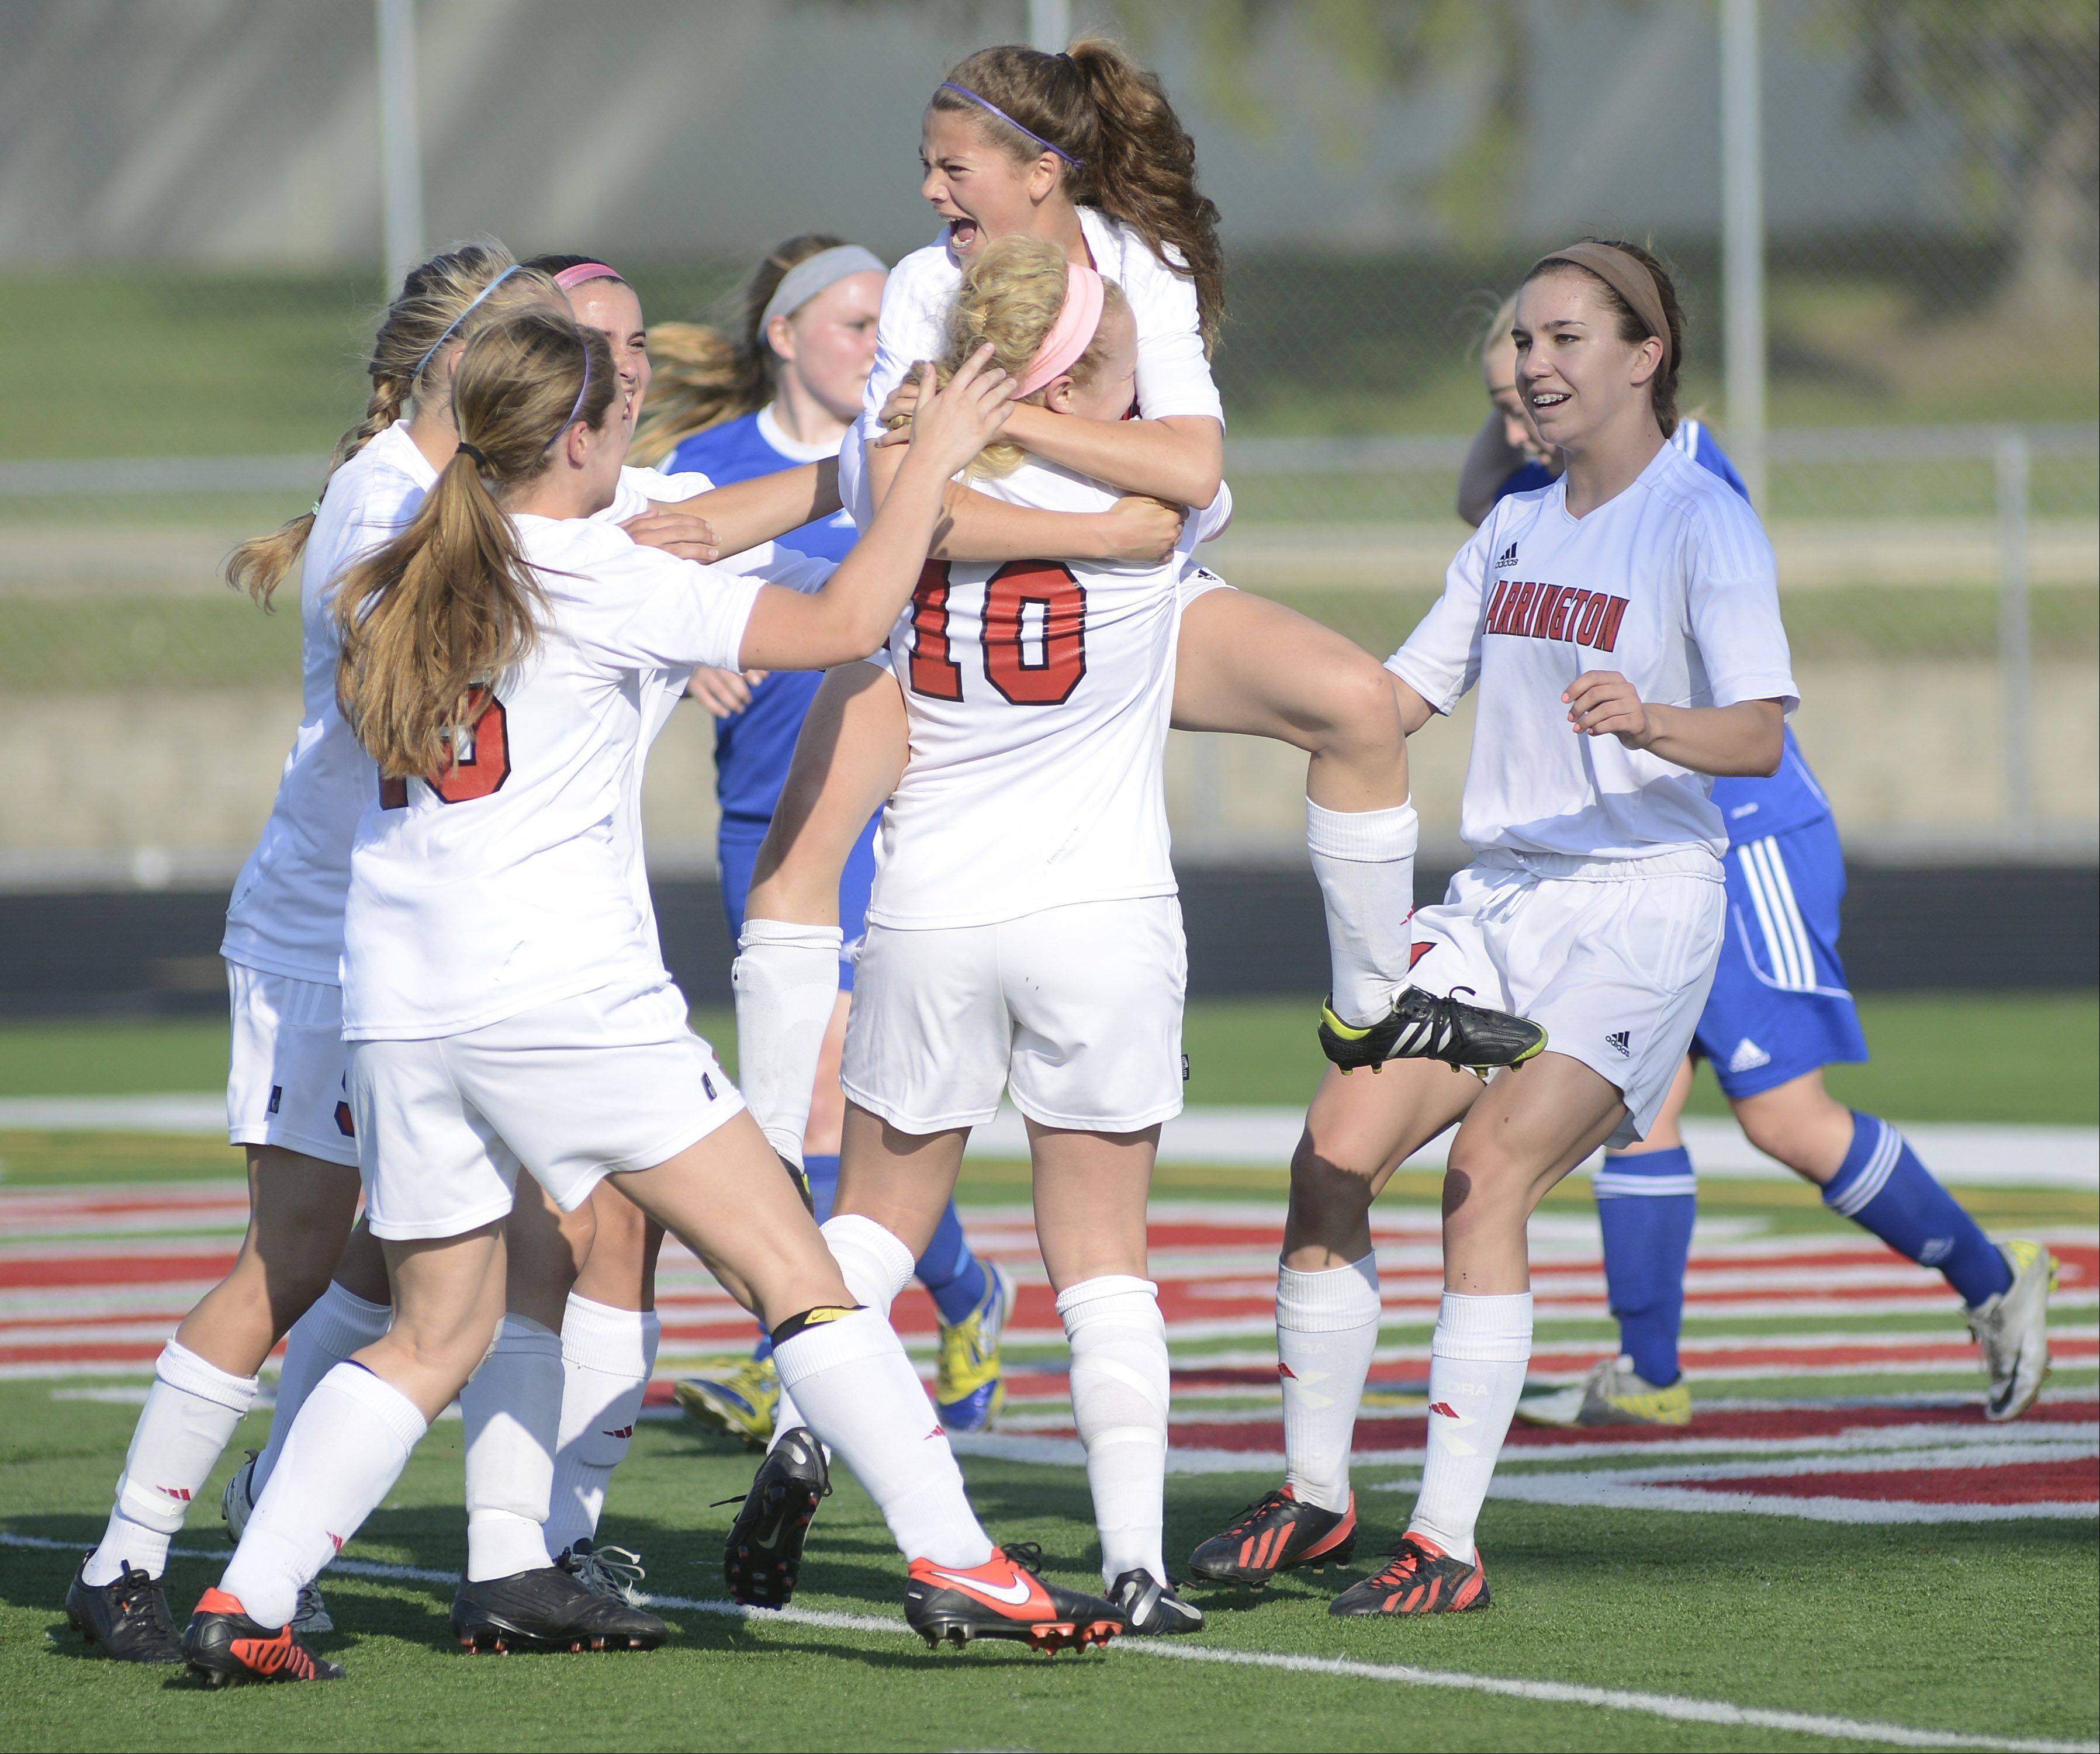 Barrington's Kelsey Muniz leaps into the arms of Molly Pfeiffer after Pfeiffer scored minutes into the first half of the Class 3A supersectional in Barrington on Wednesday.